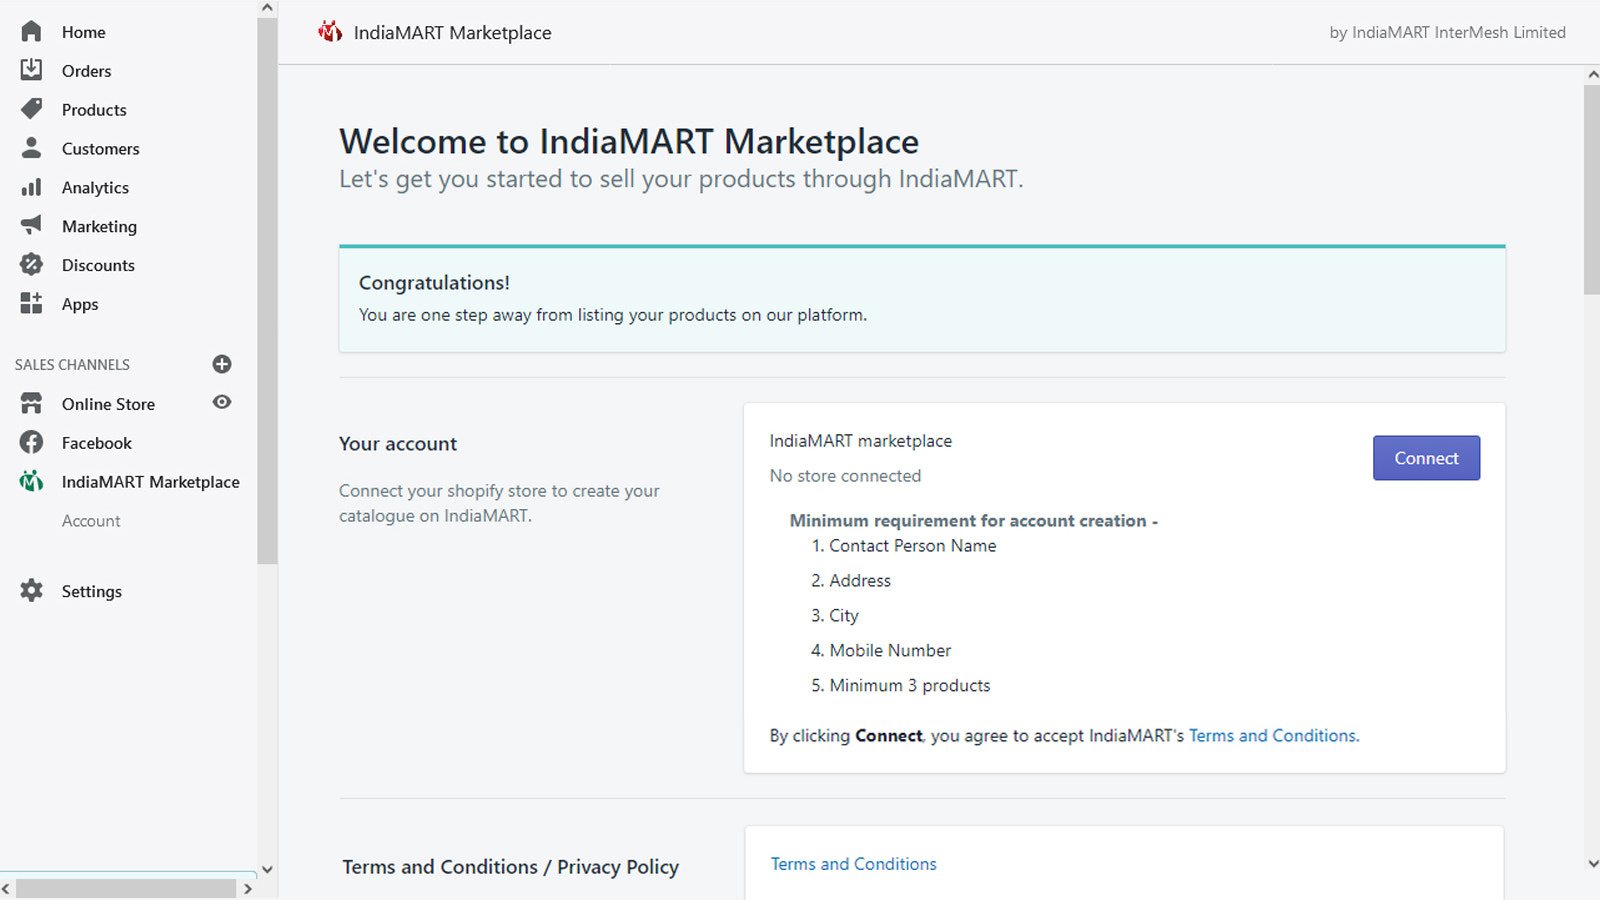 Connect shopify account screen